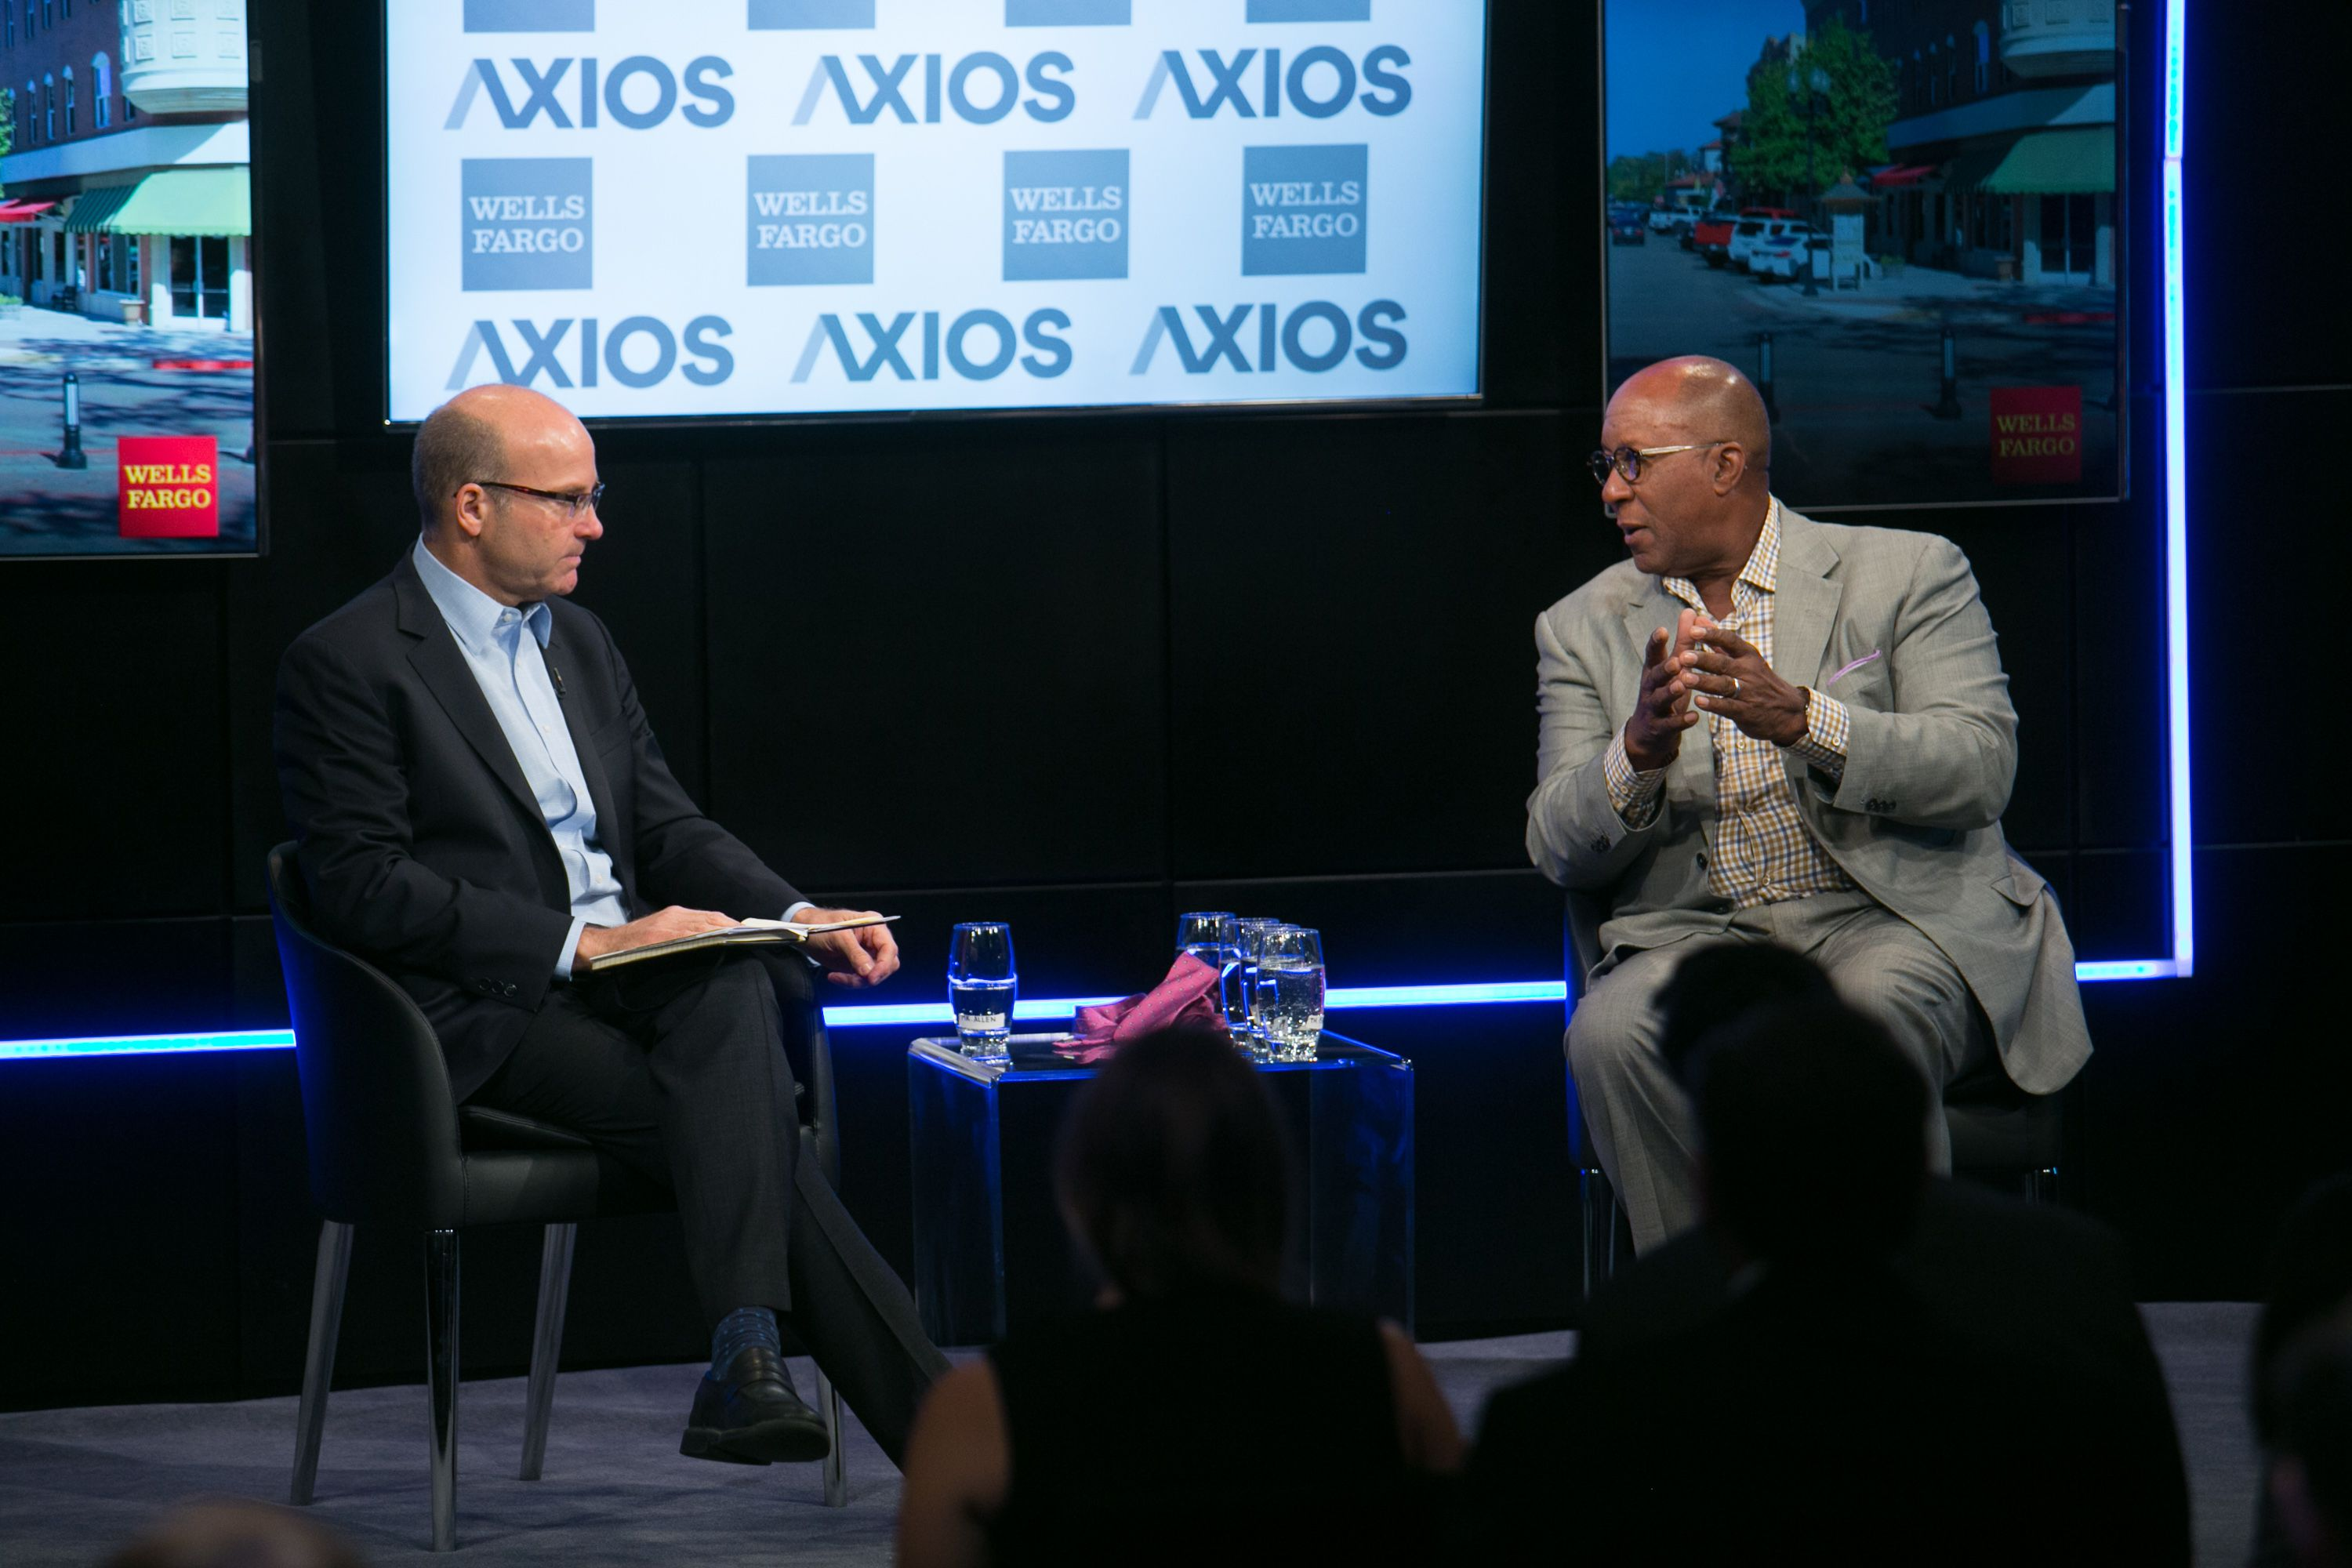 Mike Allen interviews former USTR rep. on the Axios stage about the effects of trade disputes